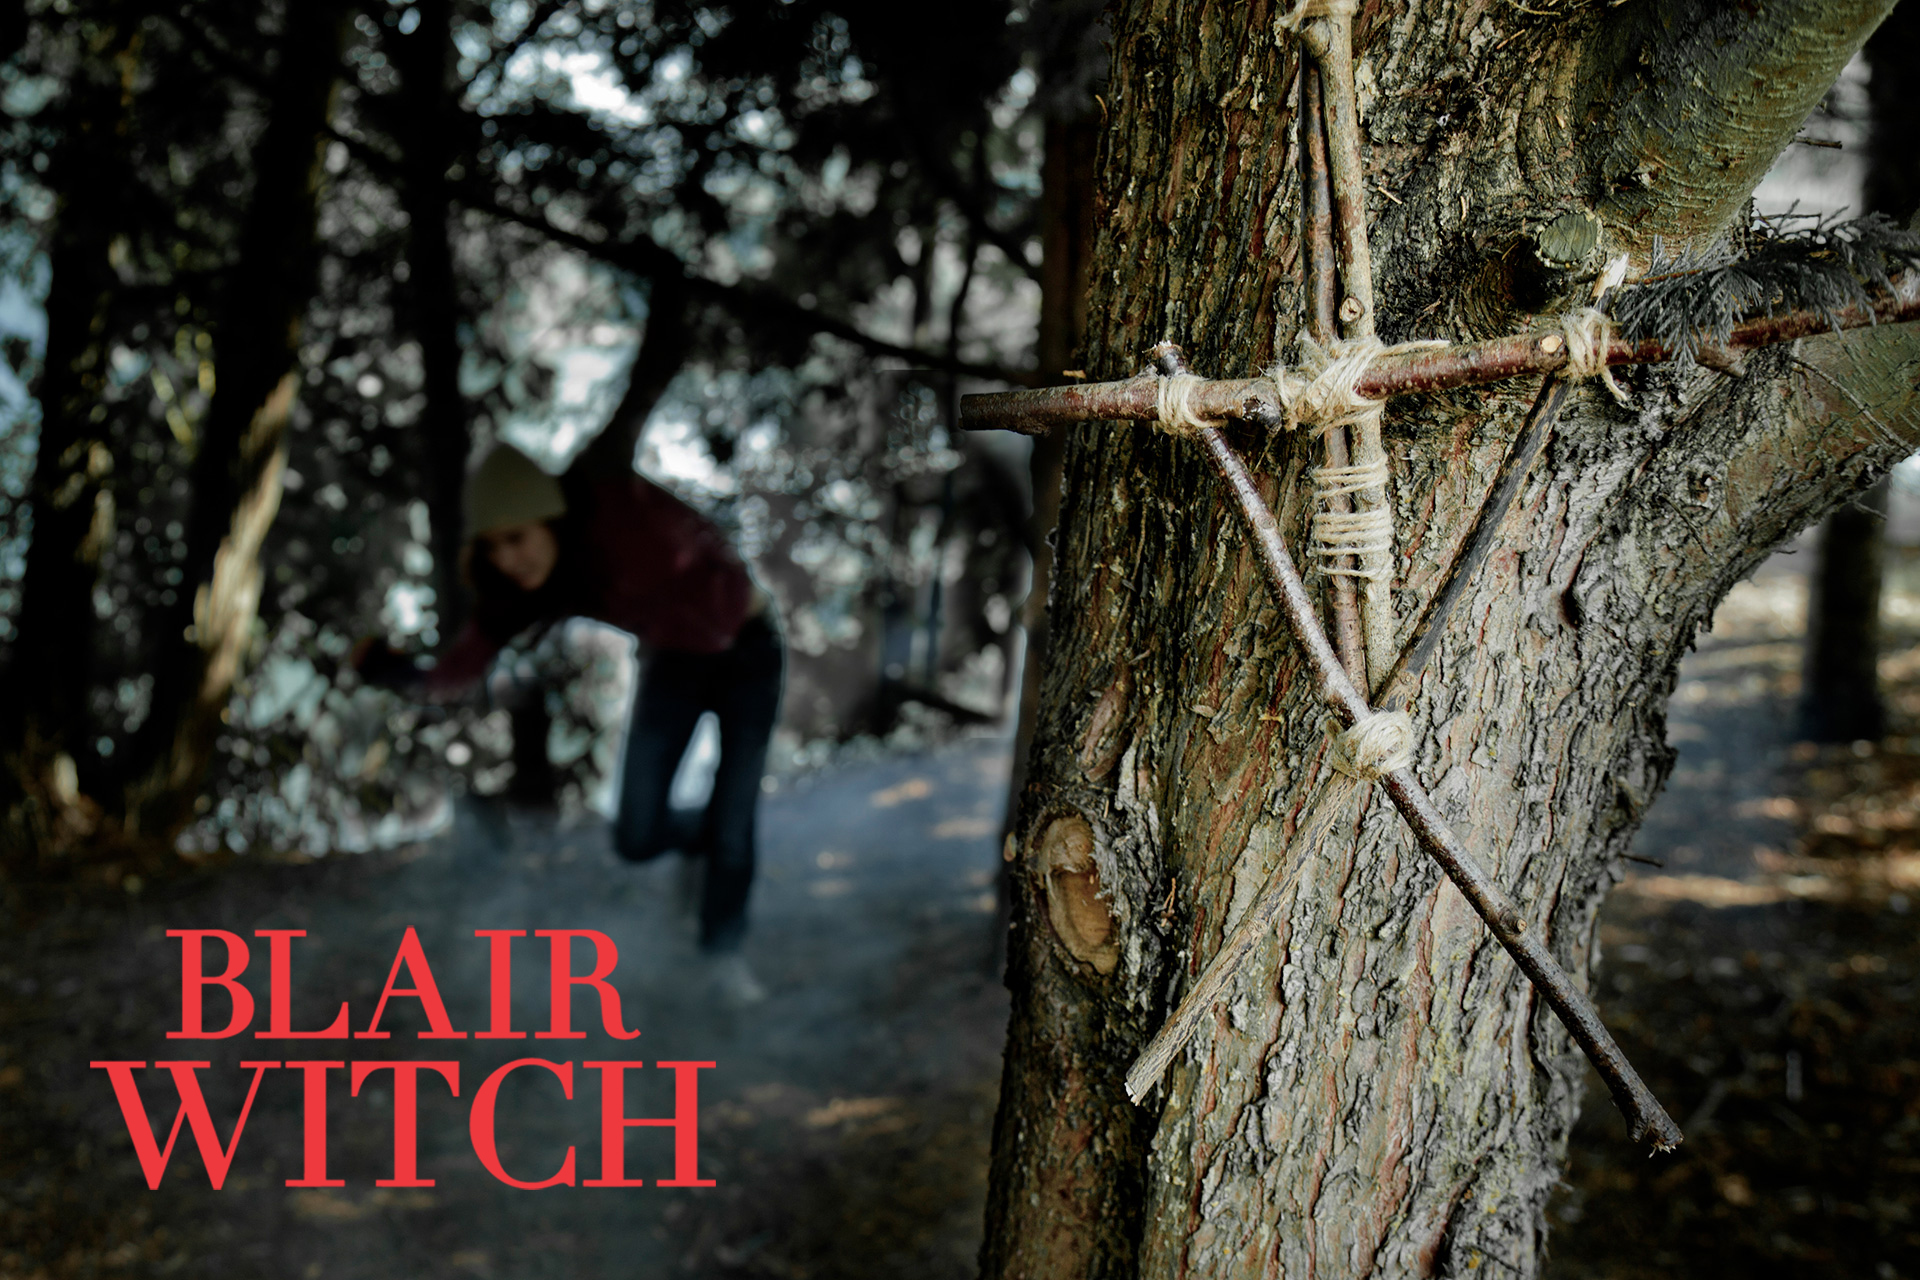 Blair Witch is back for Thorpe Park Fright Nights 2019